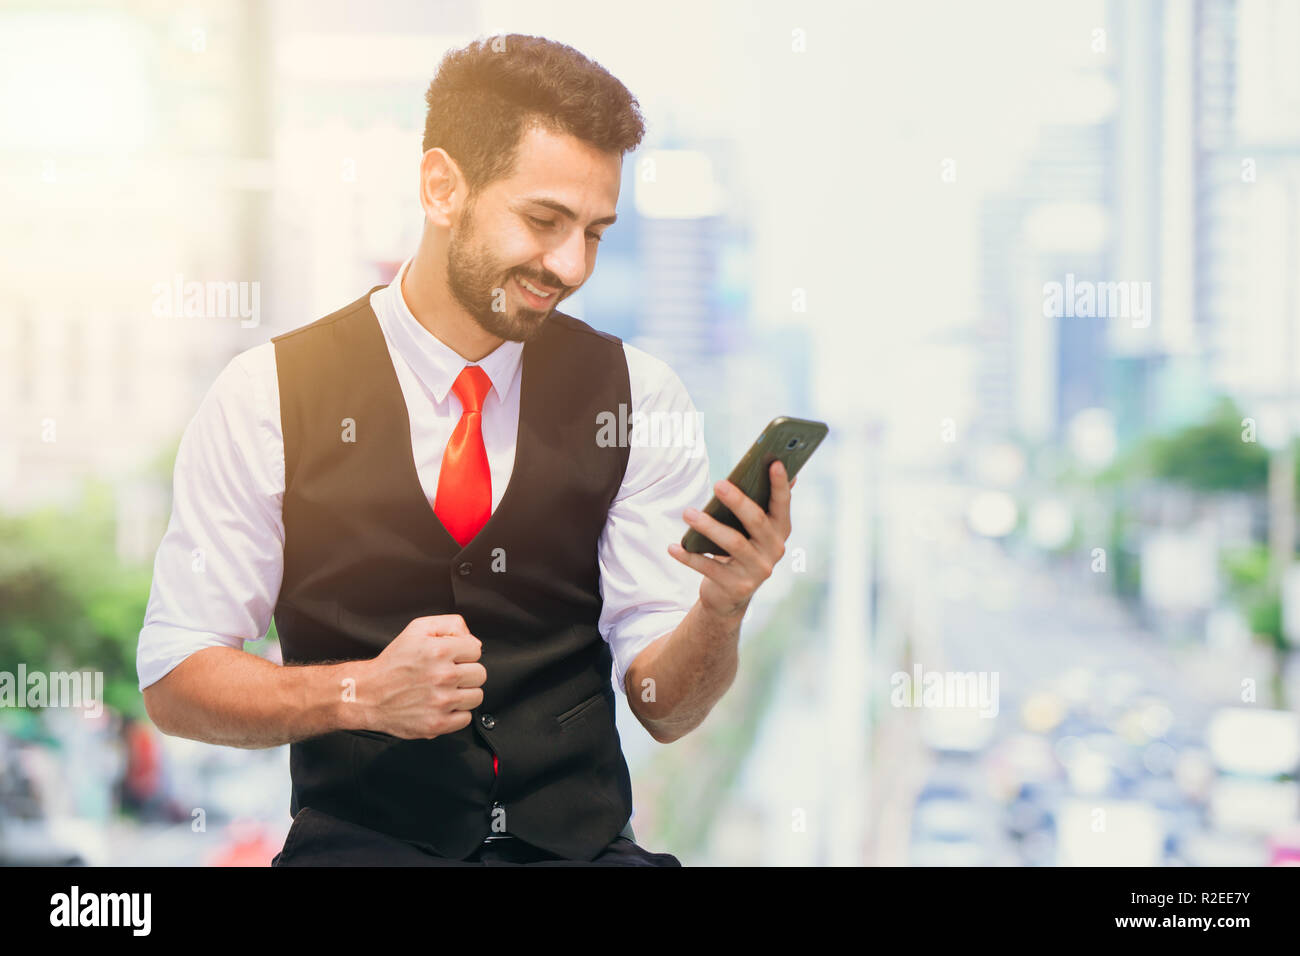 business succeeding or good news from smartphone to latin businessman watching screen - Stock Image